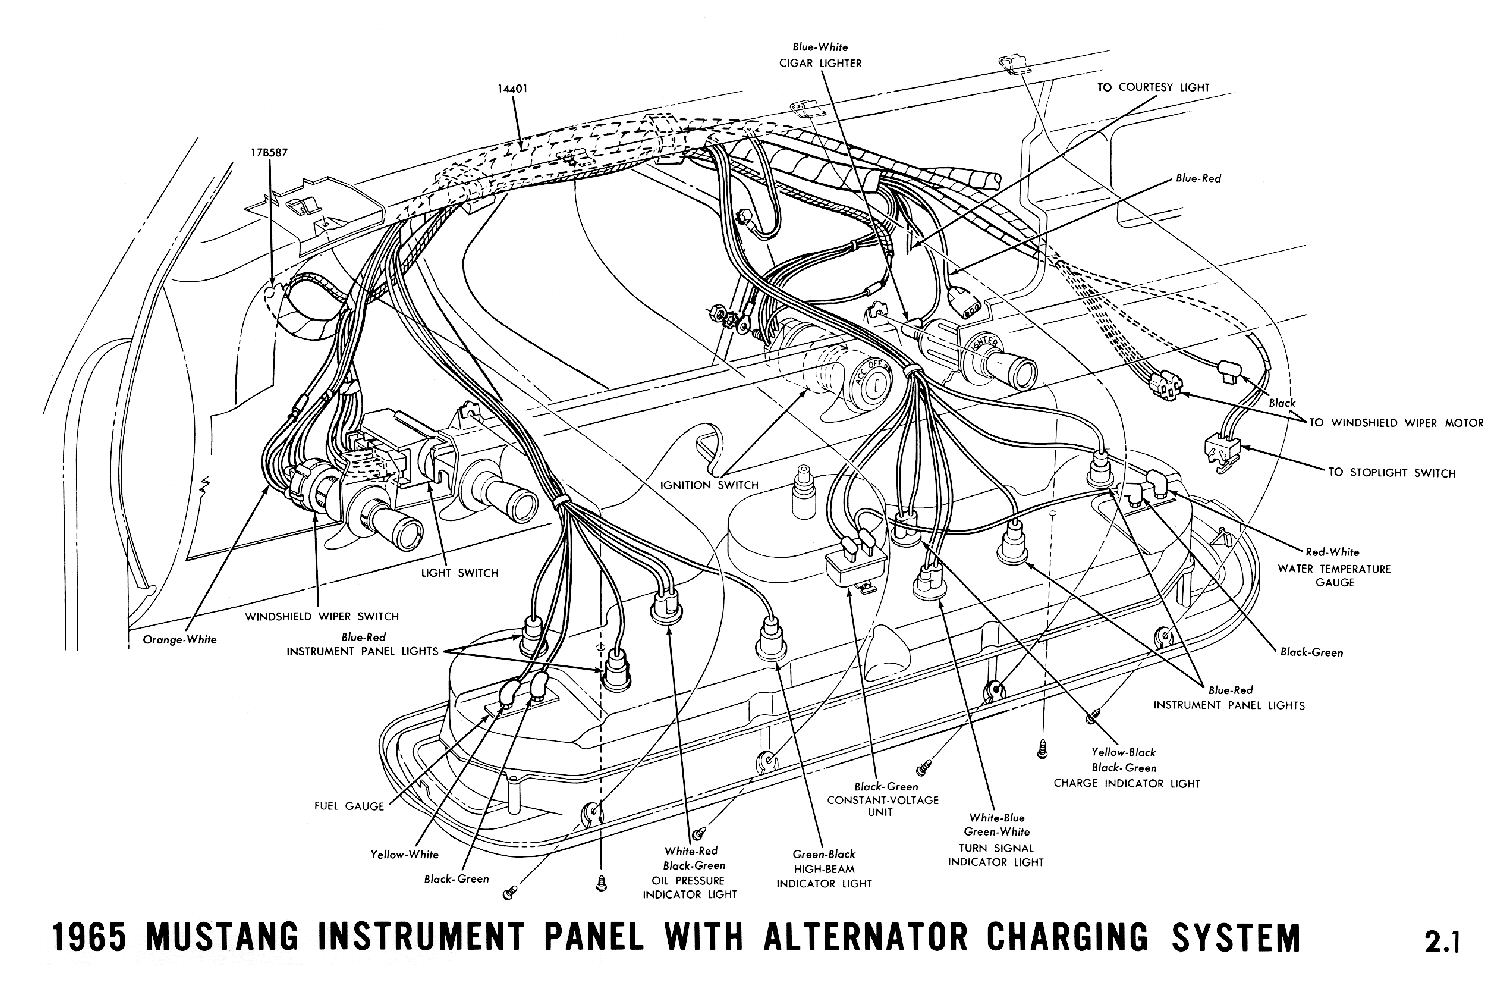 1965a 1965 mustang wiring diagrams average joe restoration 1965 mustang alternator wiring diagram at aneh.co